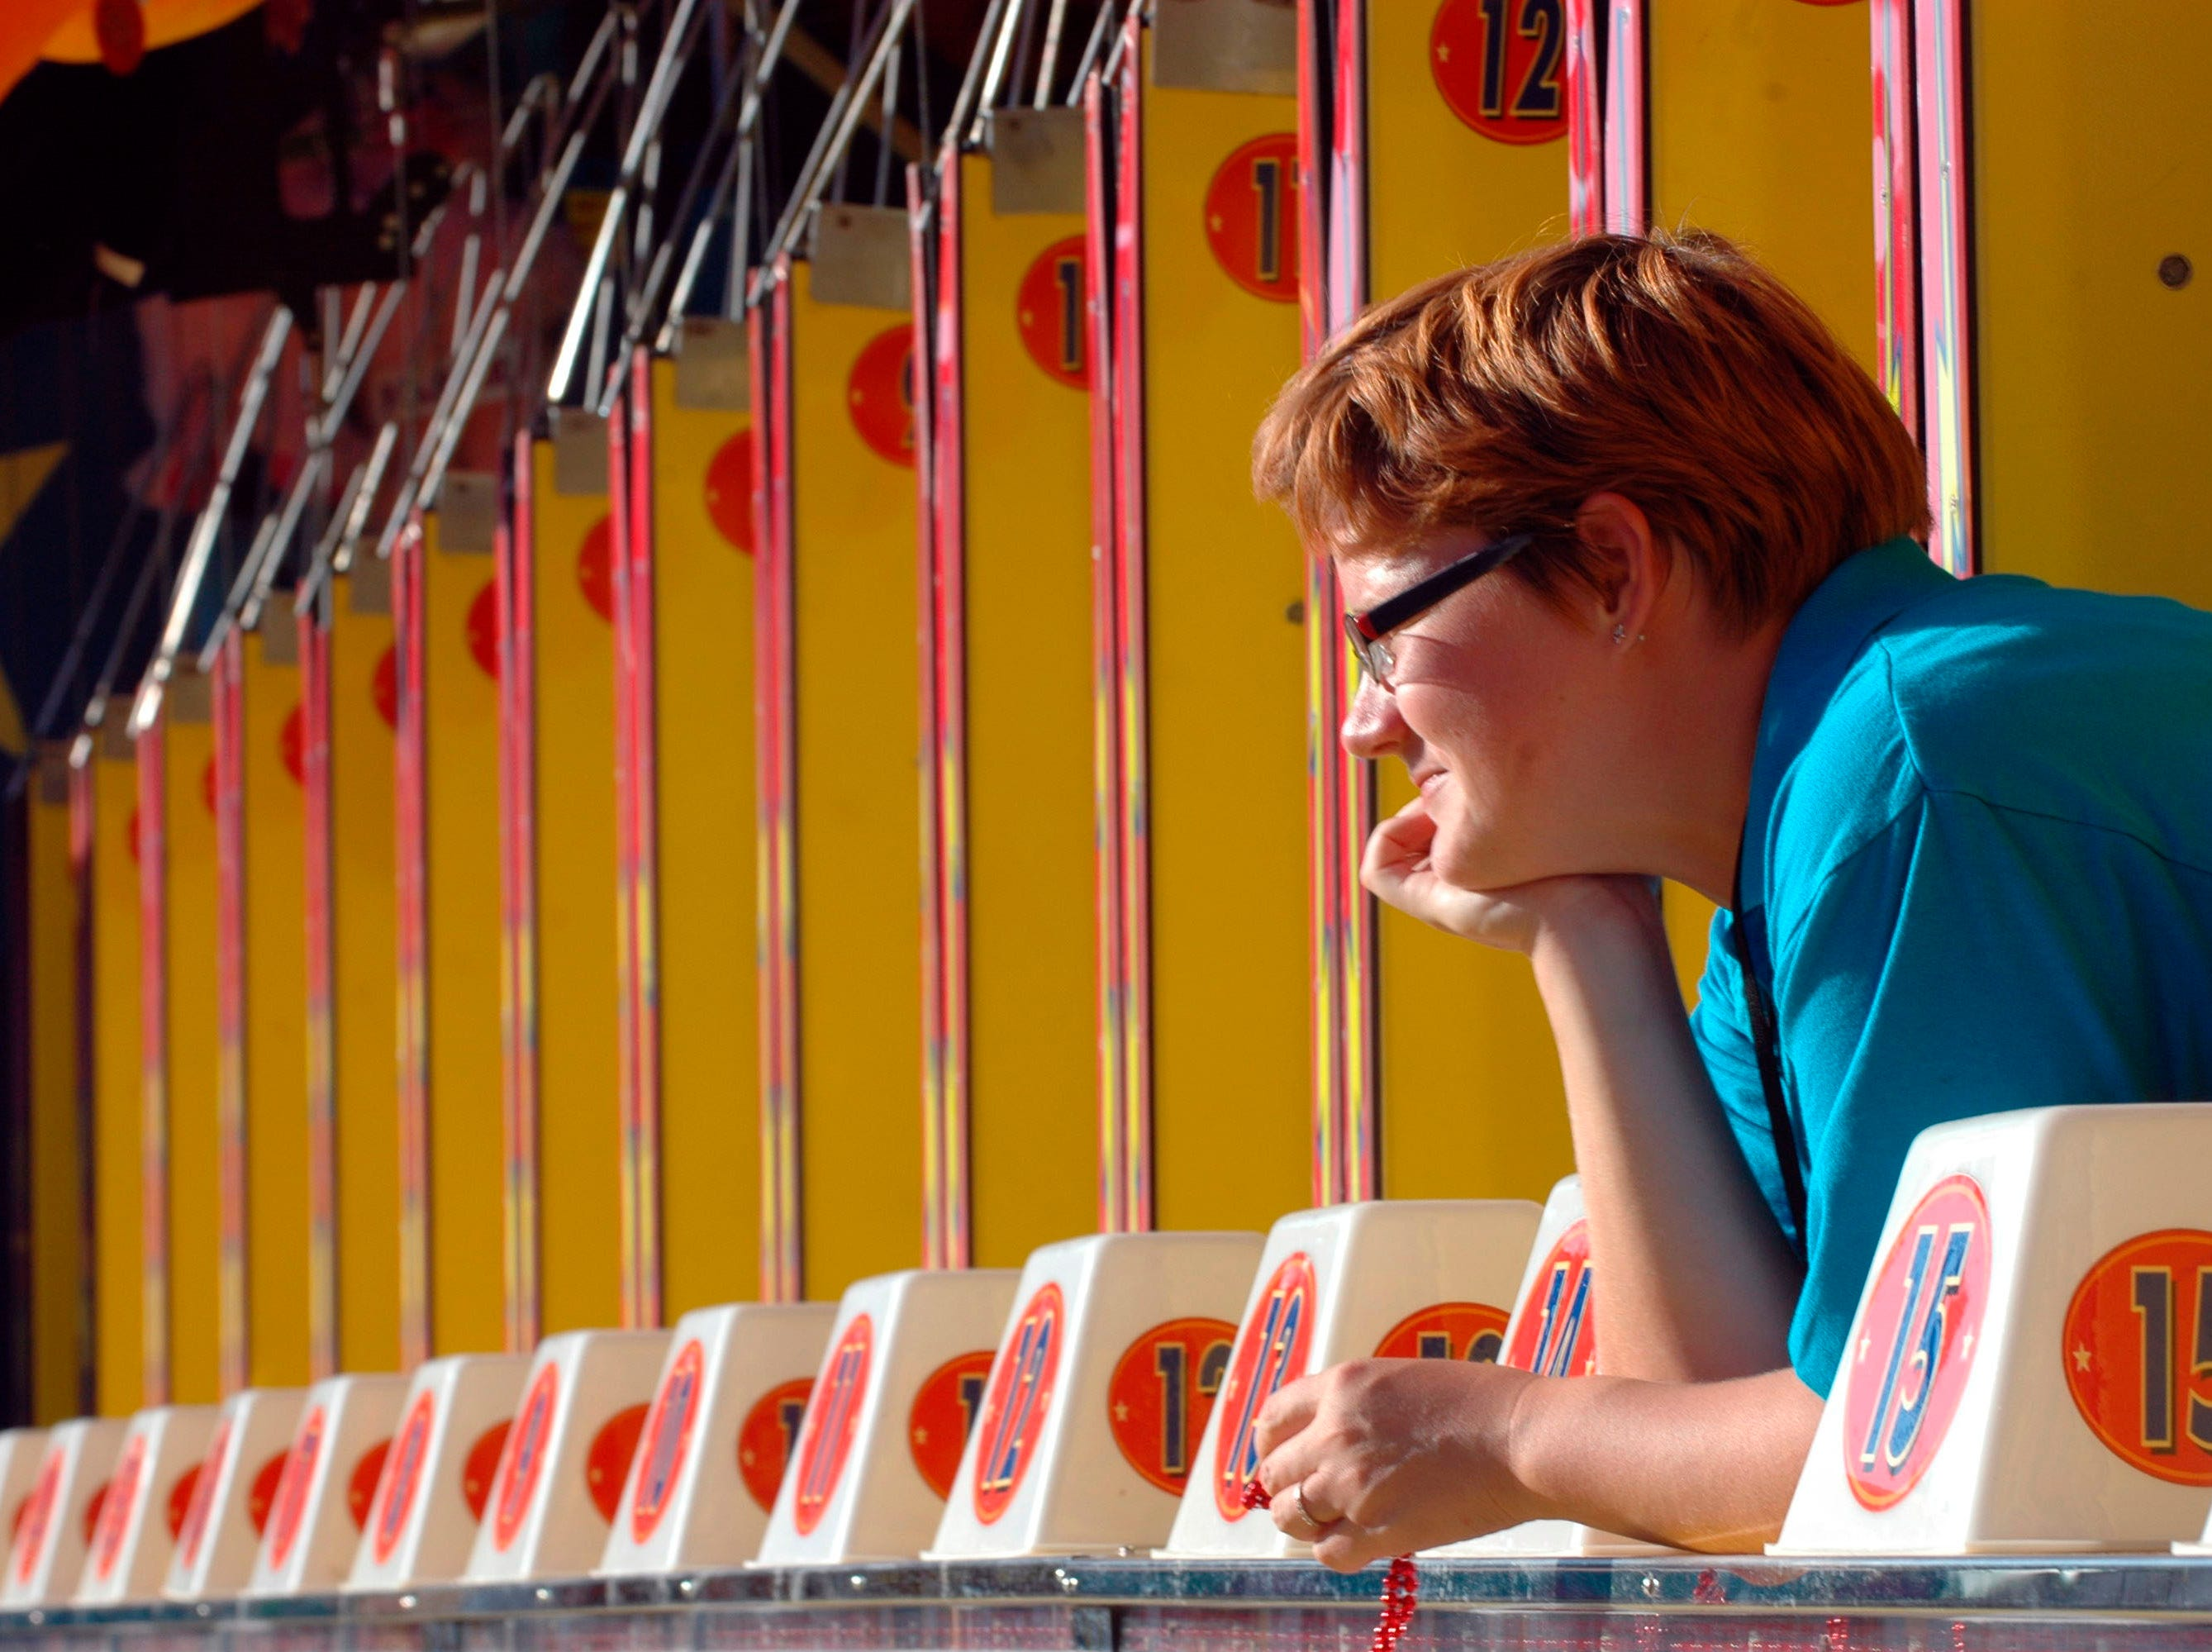 Anna Shabanova (CQ) of Russia, peers out at the crowd of fairgoers from her booth. The Tennessee Valley Fair was held at the Chilhowee Park and opened on Friday, August 5, 2008.